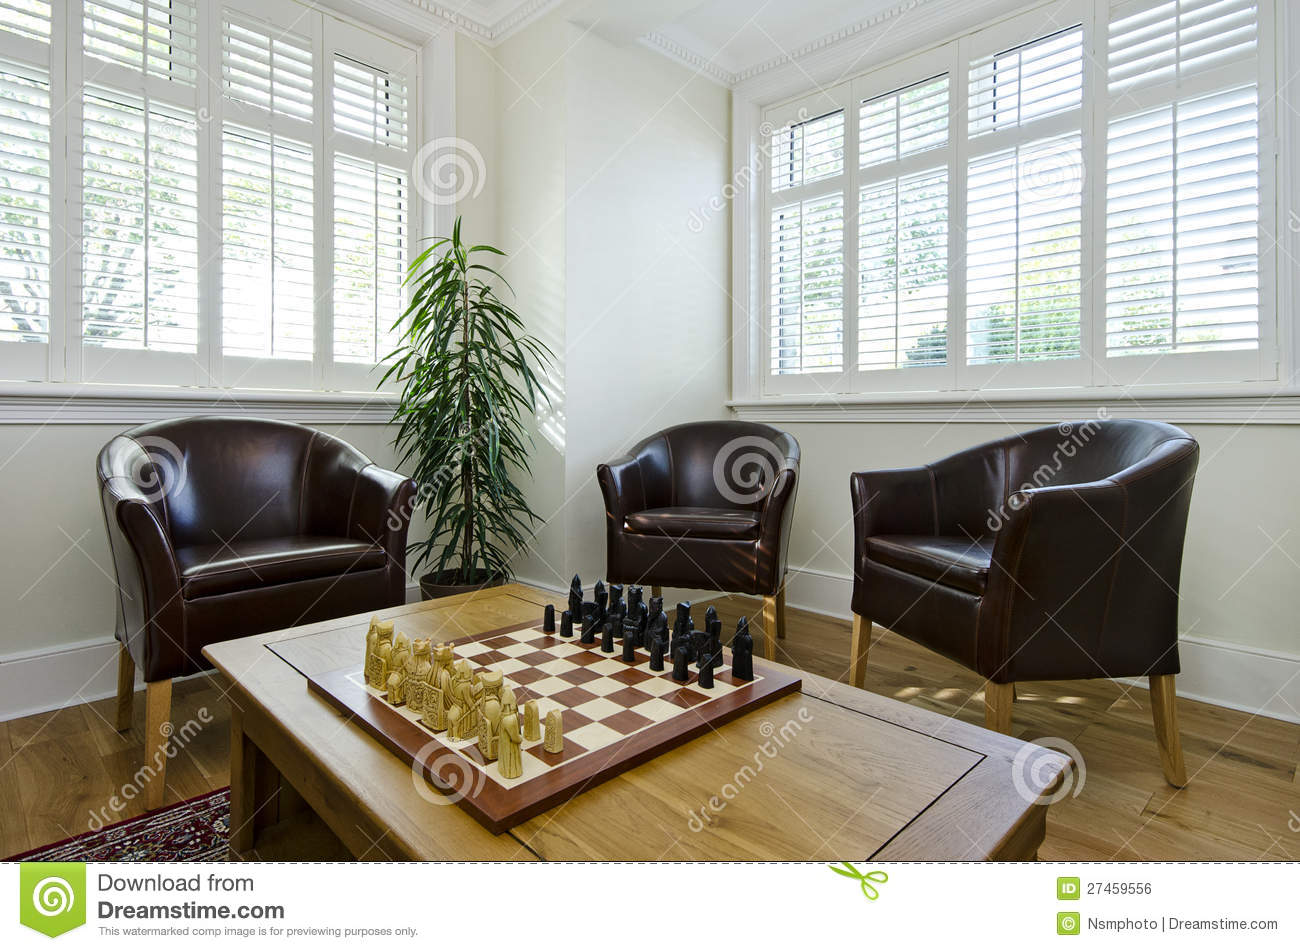 Study Room With Leather Armchairs And Chess Board Stock